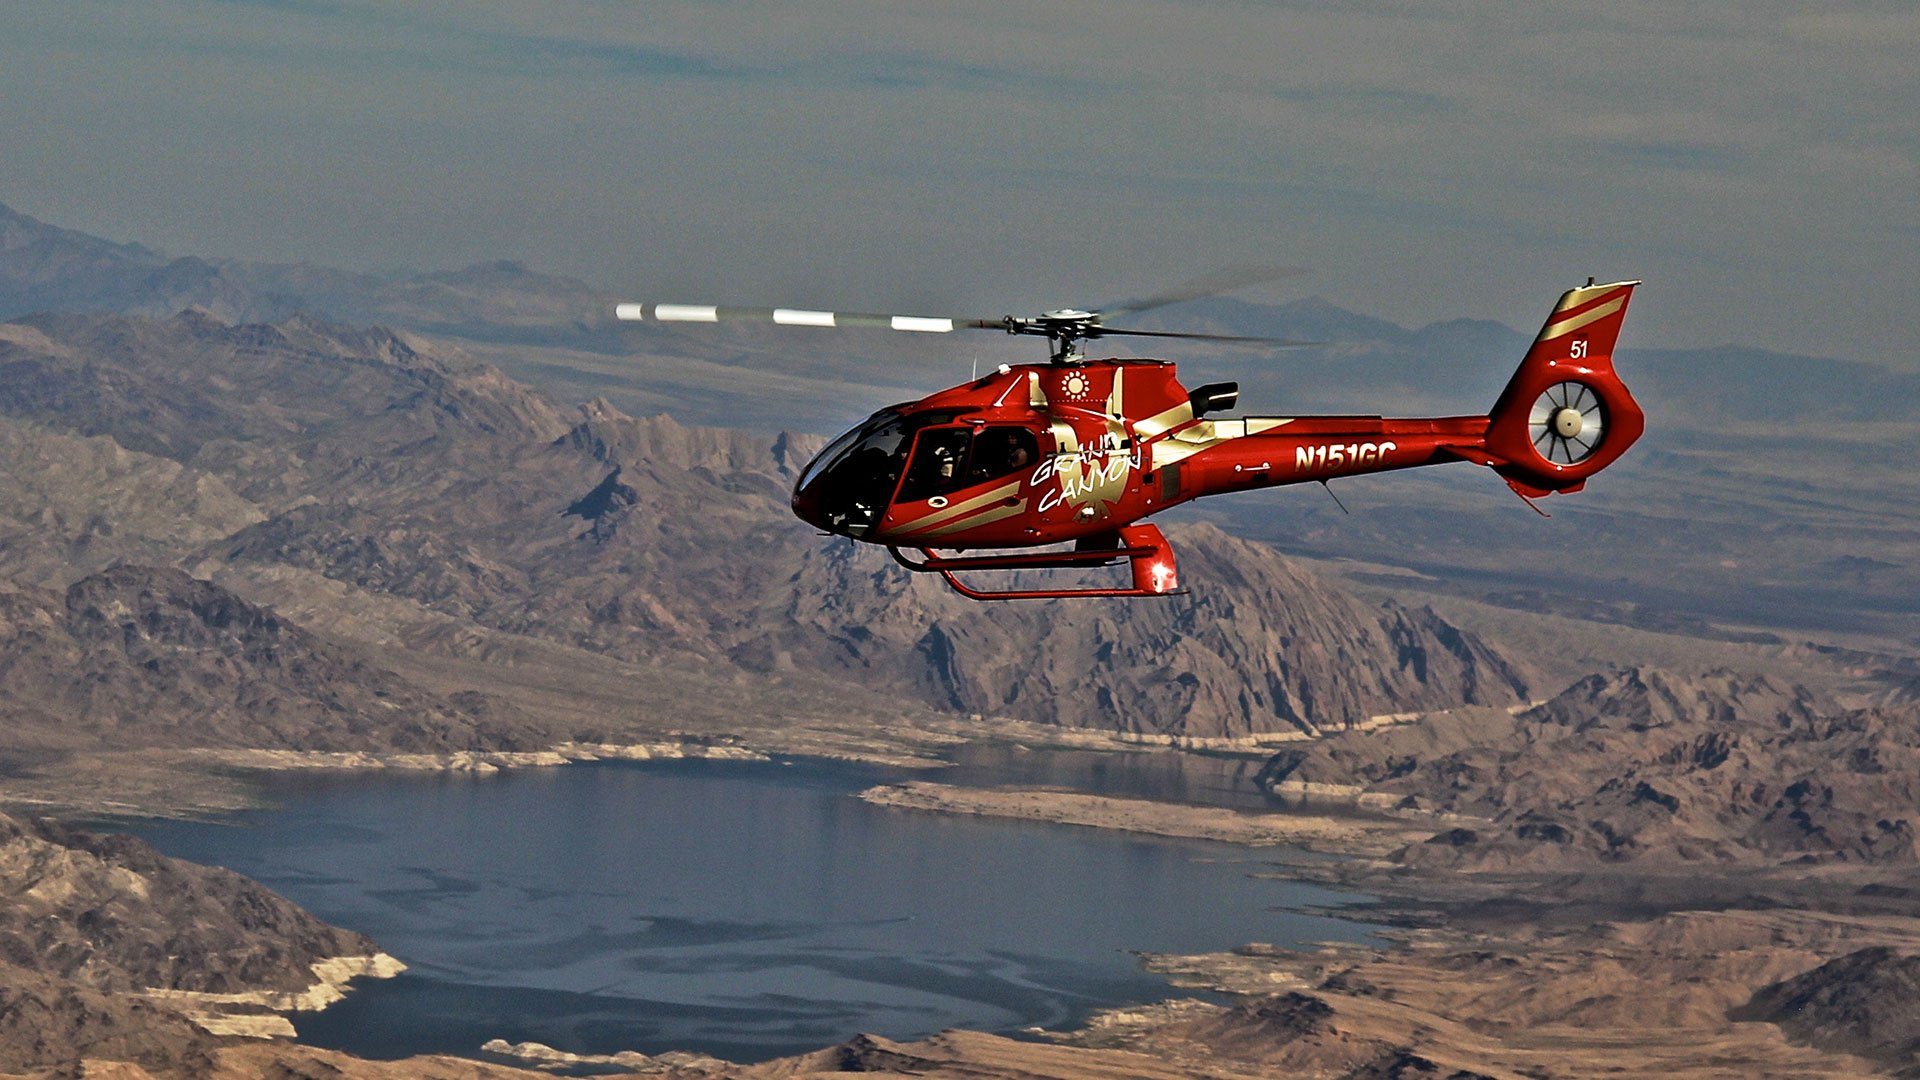 A red helicopter flies over the Mojave Desert and Lake Mead.